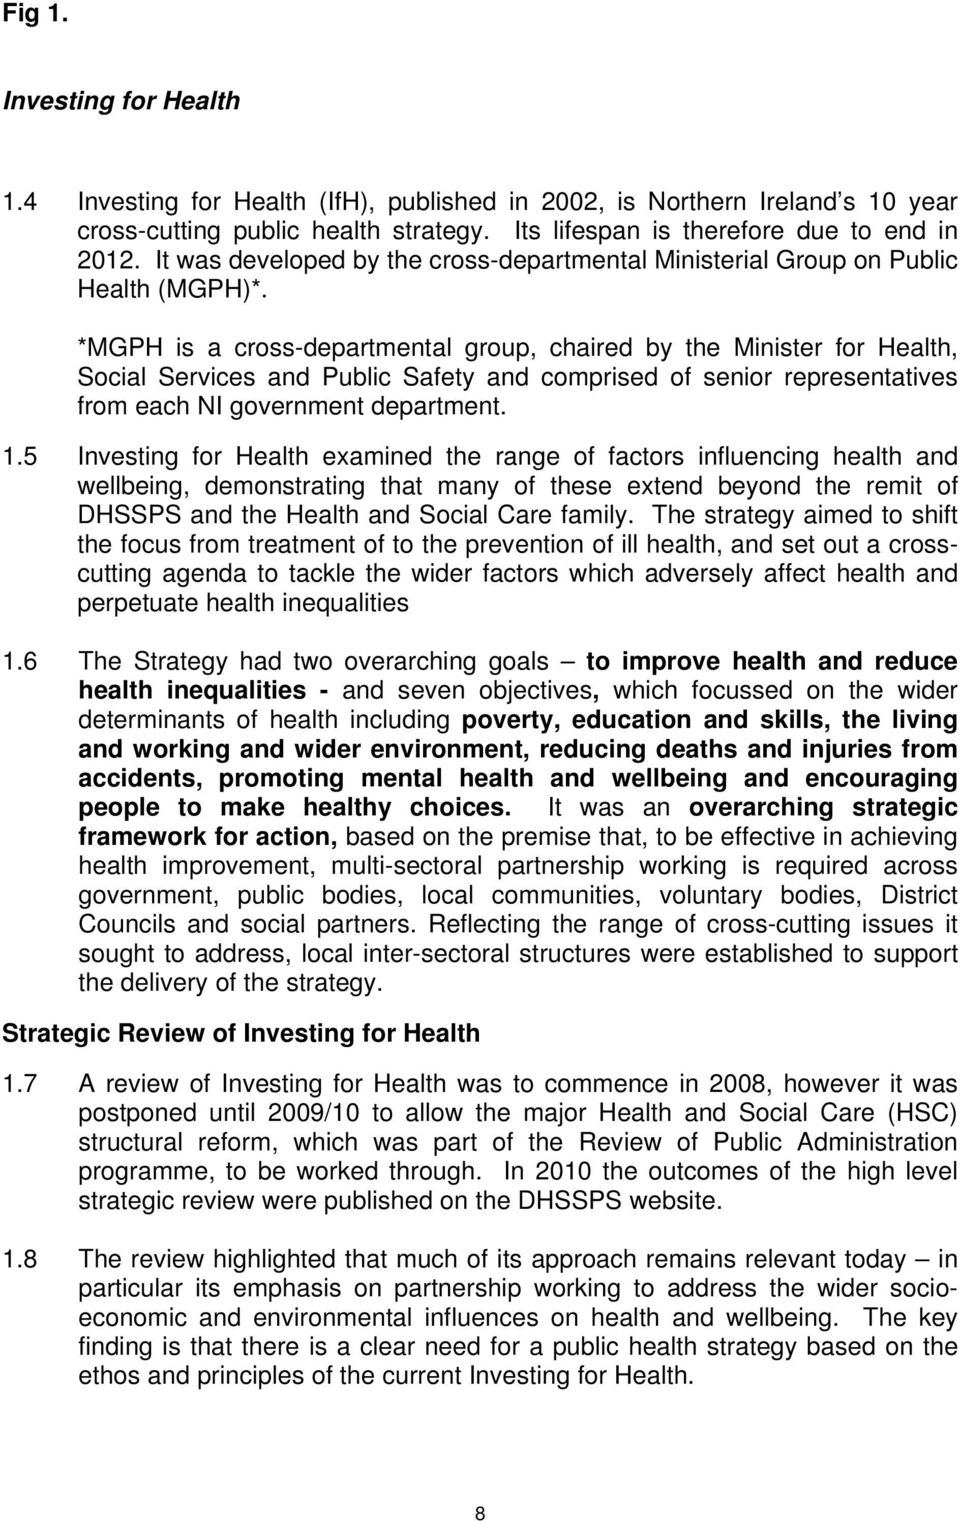 *MGPH is a cross-departmental group, chaired by the Minister for Health, Social Services and Public Safety and comprised of senior representatives from each NI government department. 1.